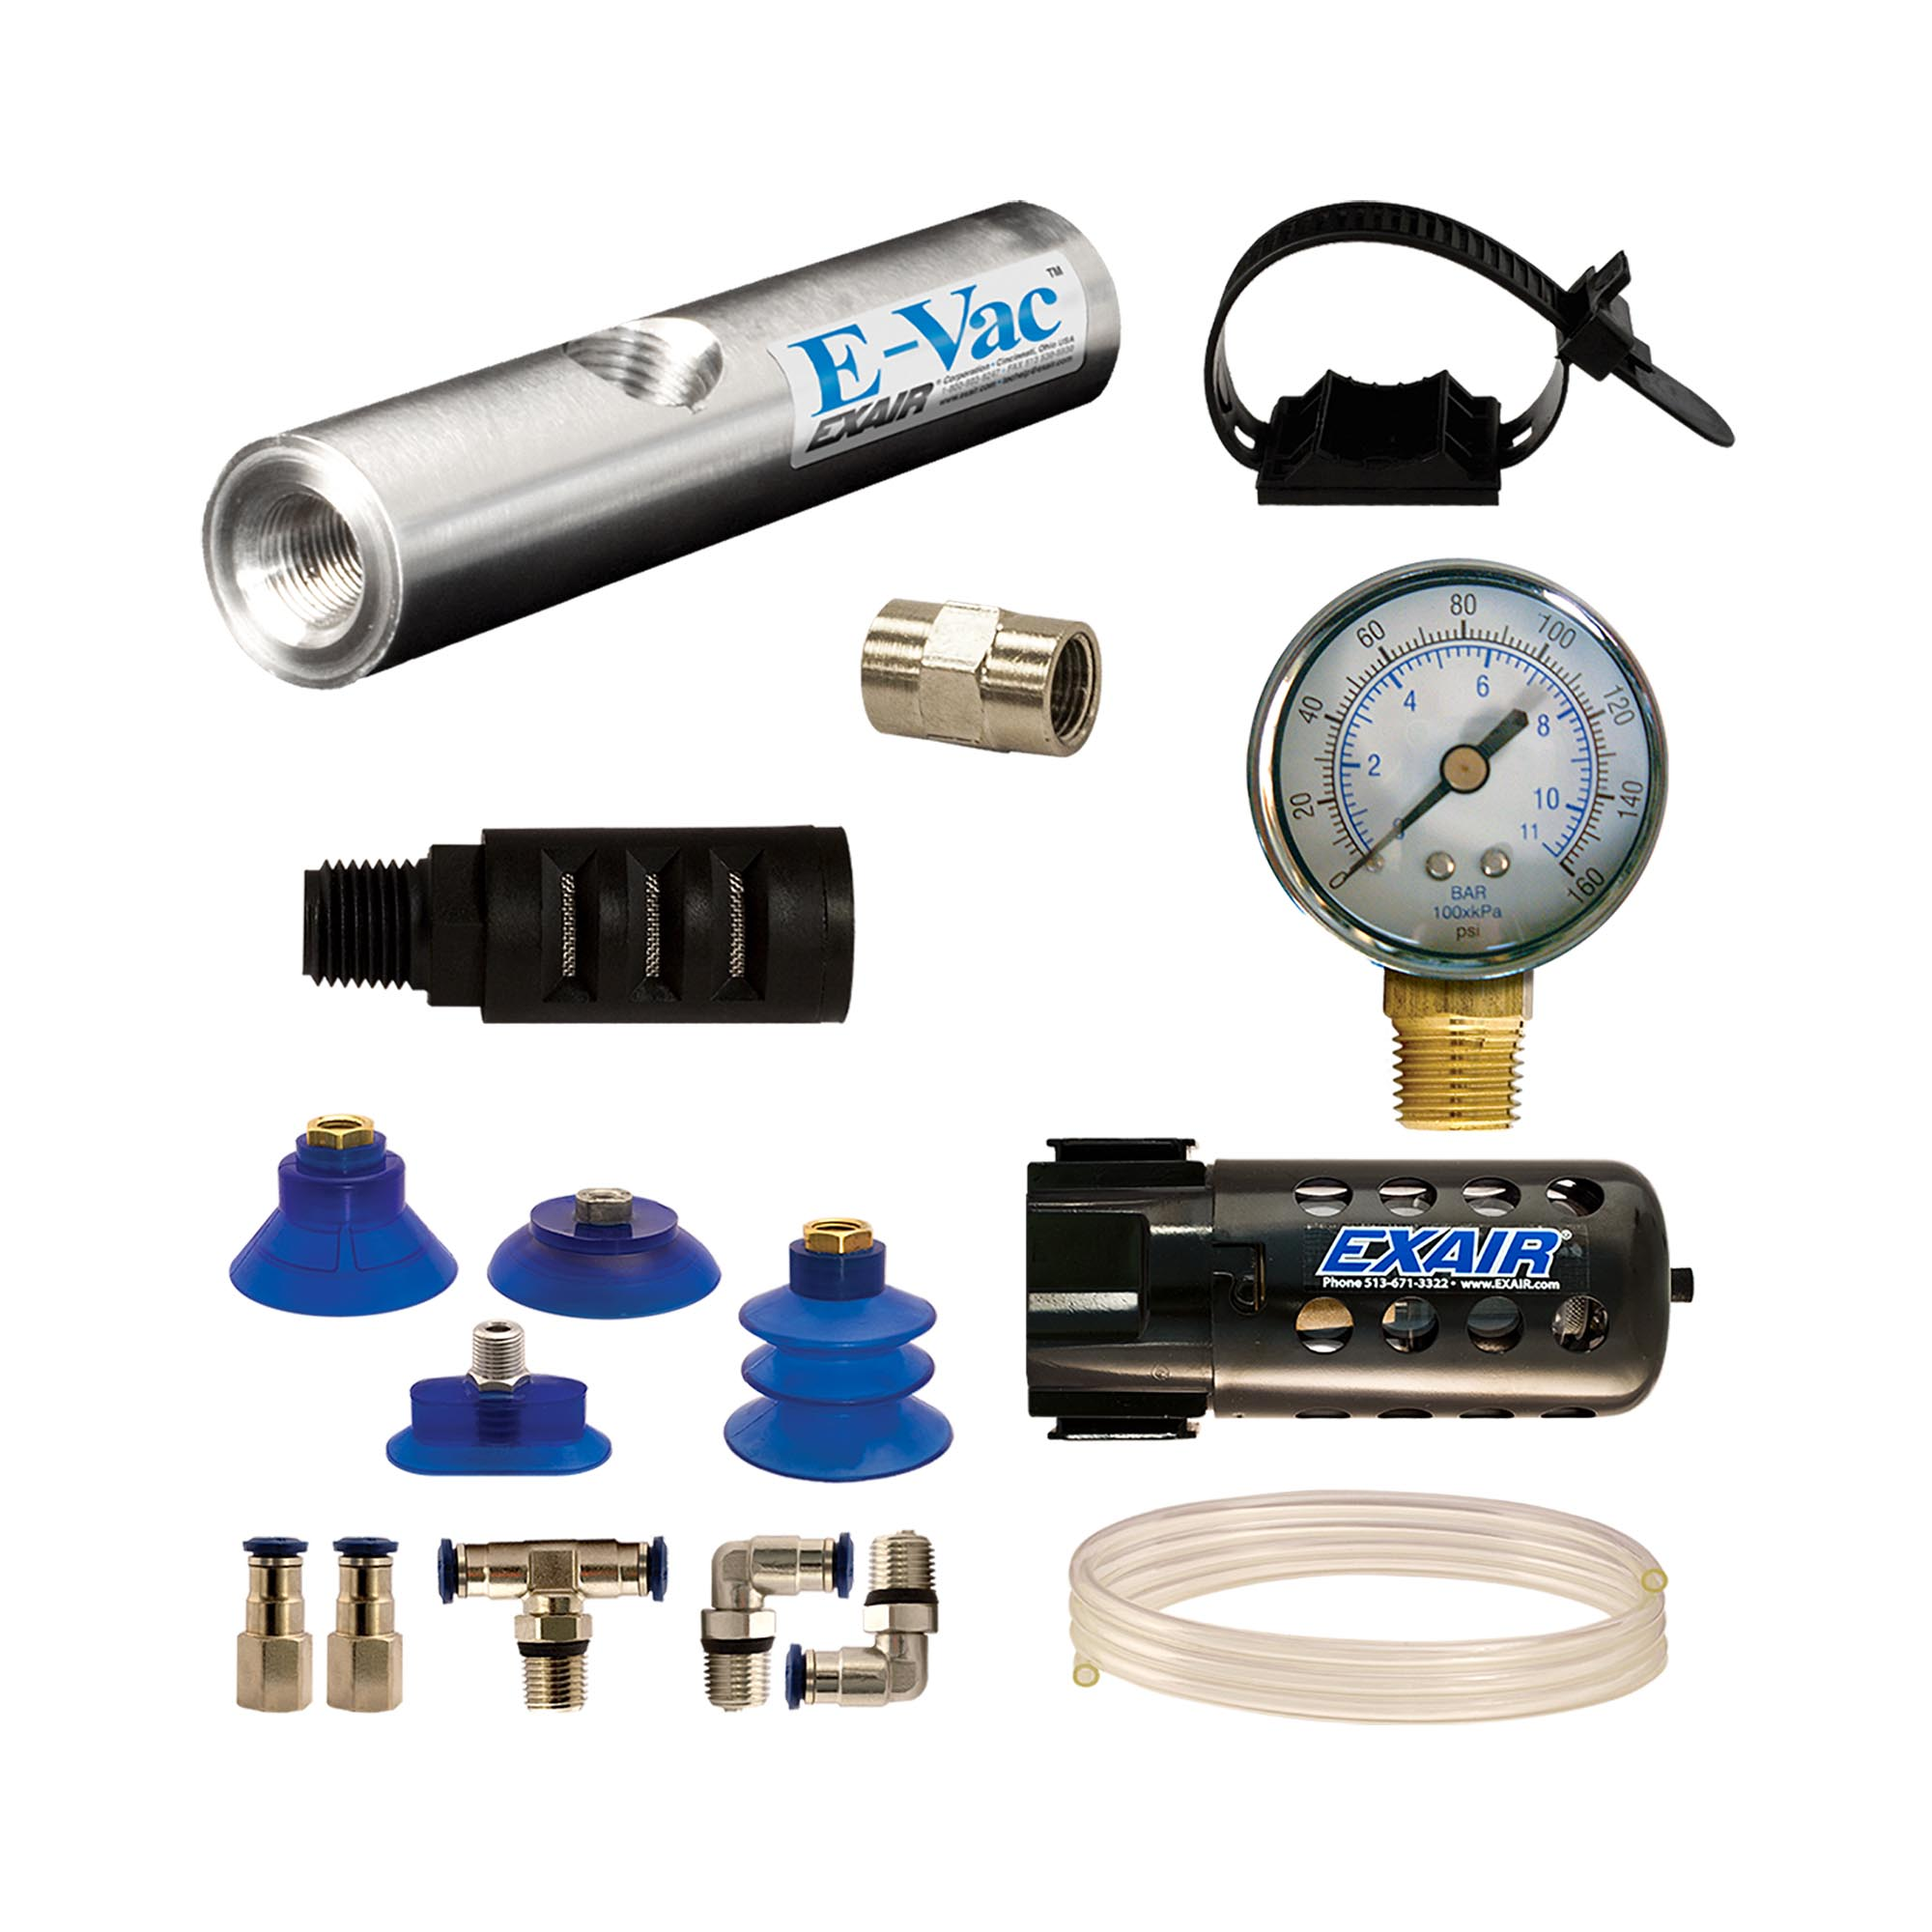 Model 812003M In-Line E-Vac Deluxe kit with standard muffler adds a filter separator and pressure gauge.